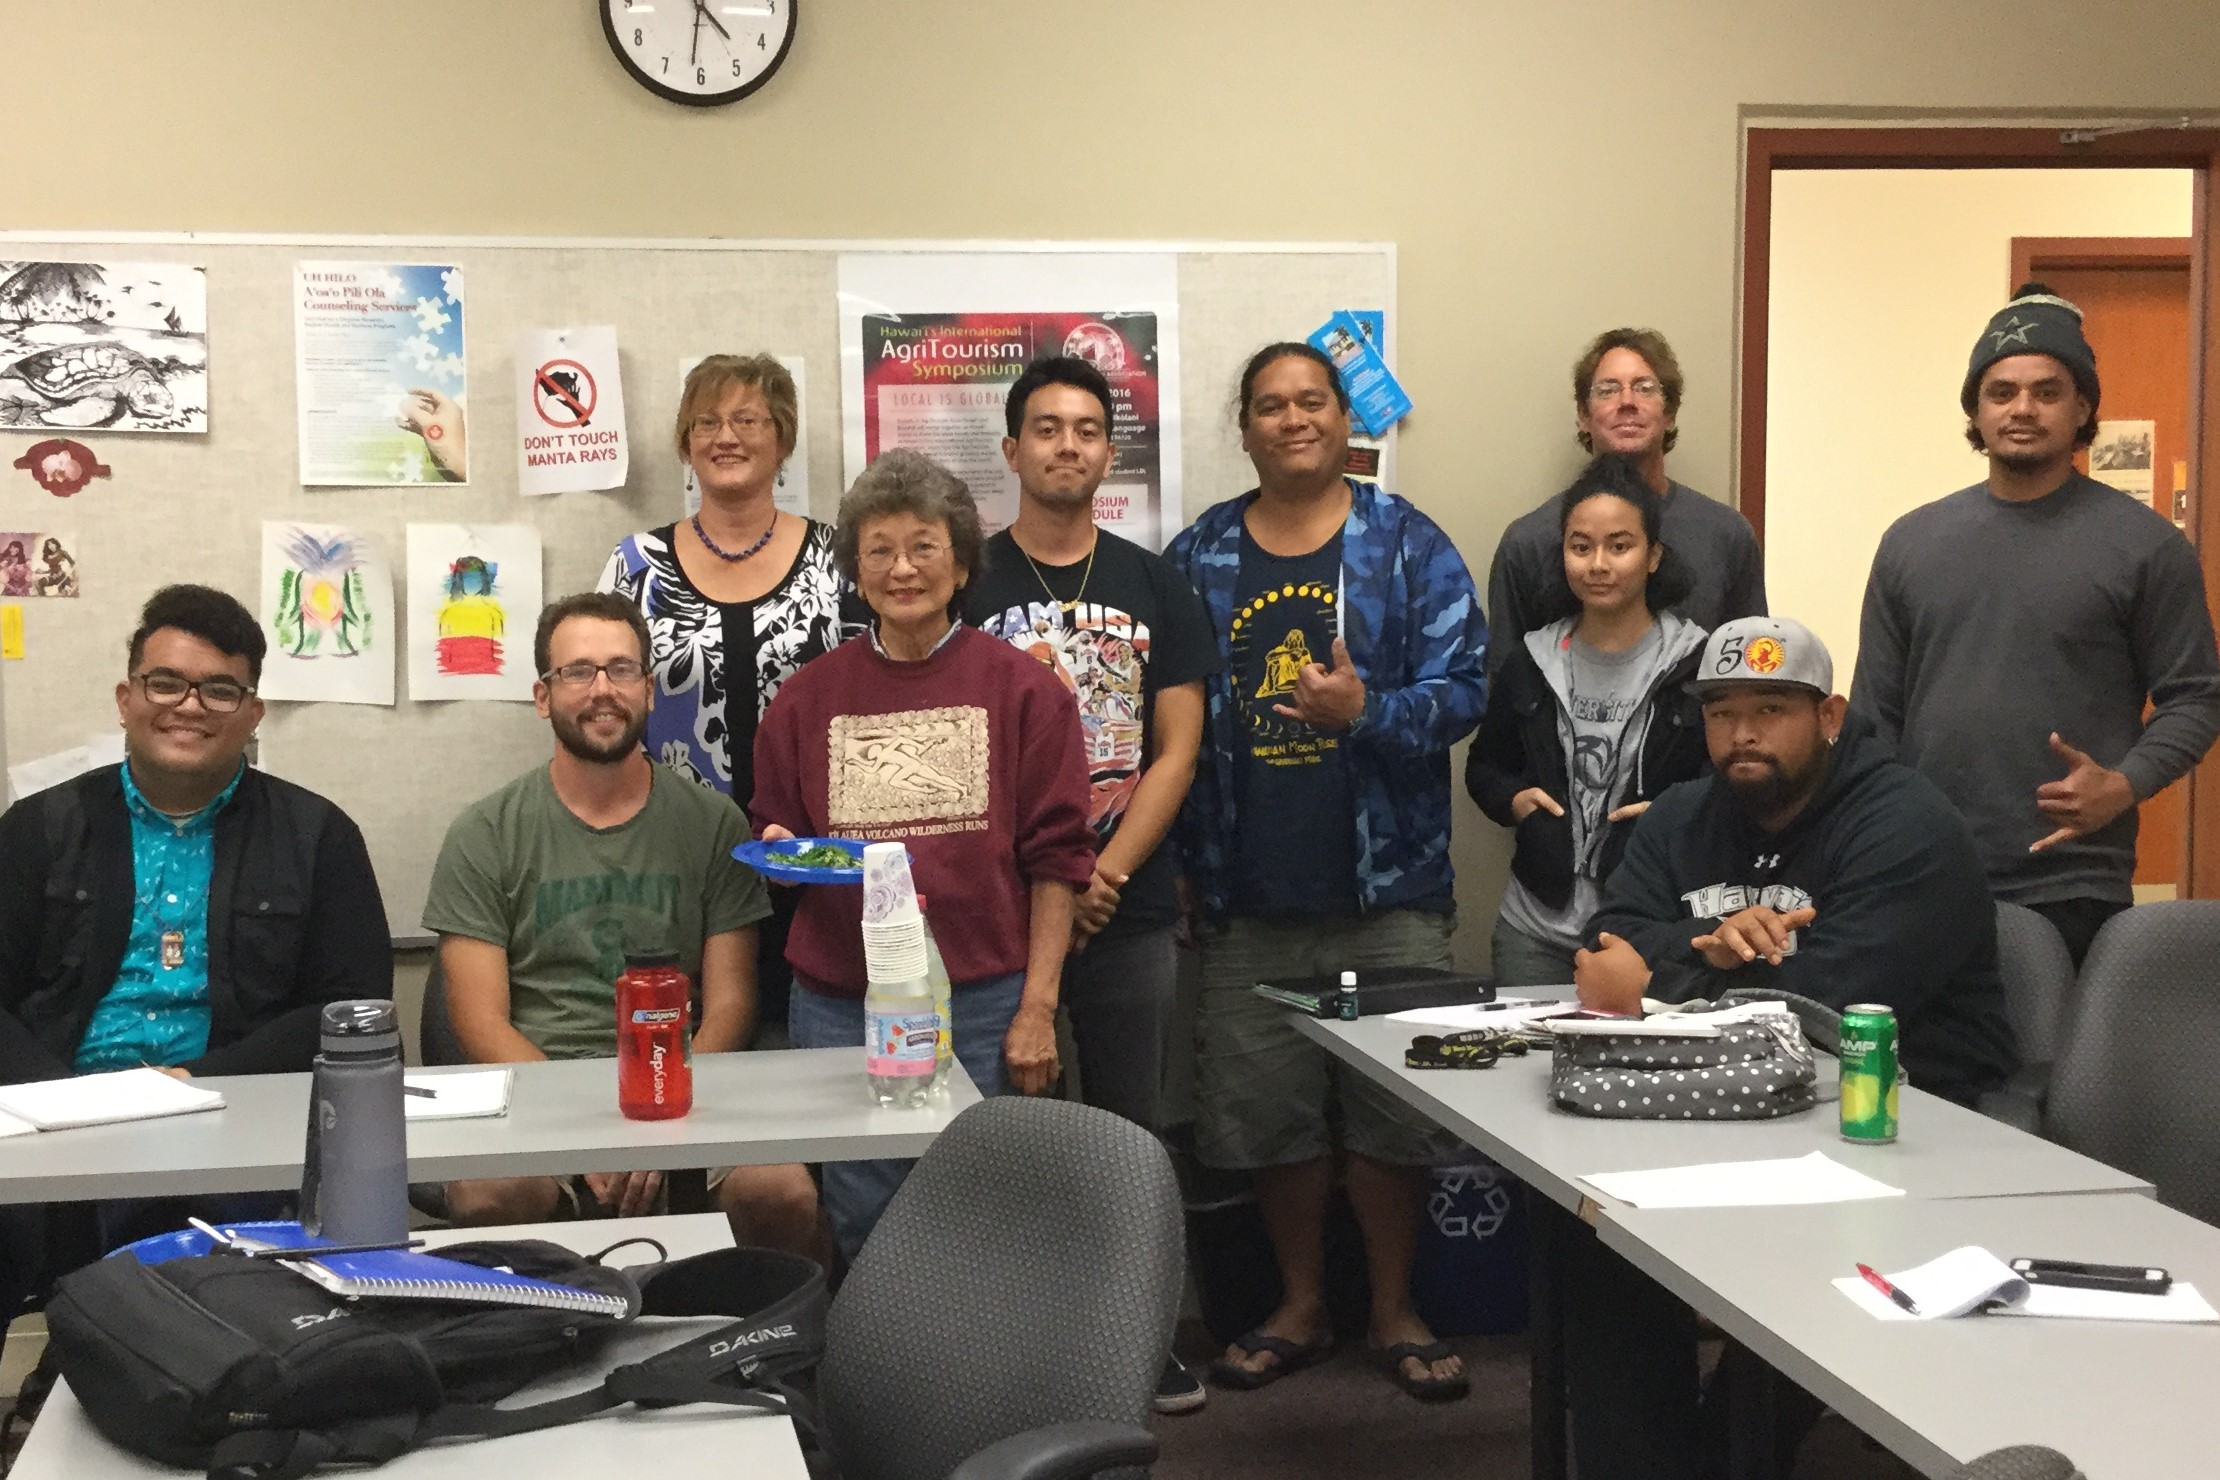 Local culinary expert Audrey Wilson shares ideas with UH Hilo agritourism class